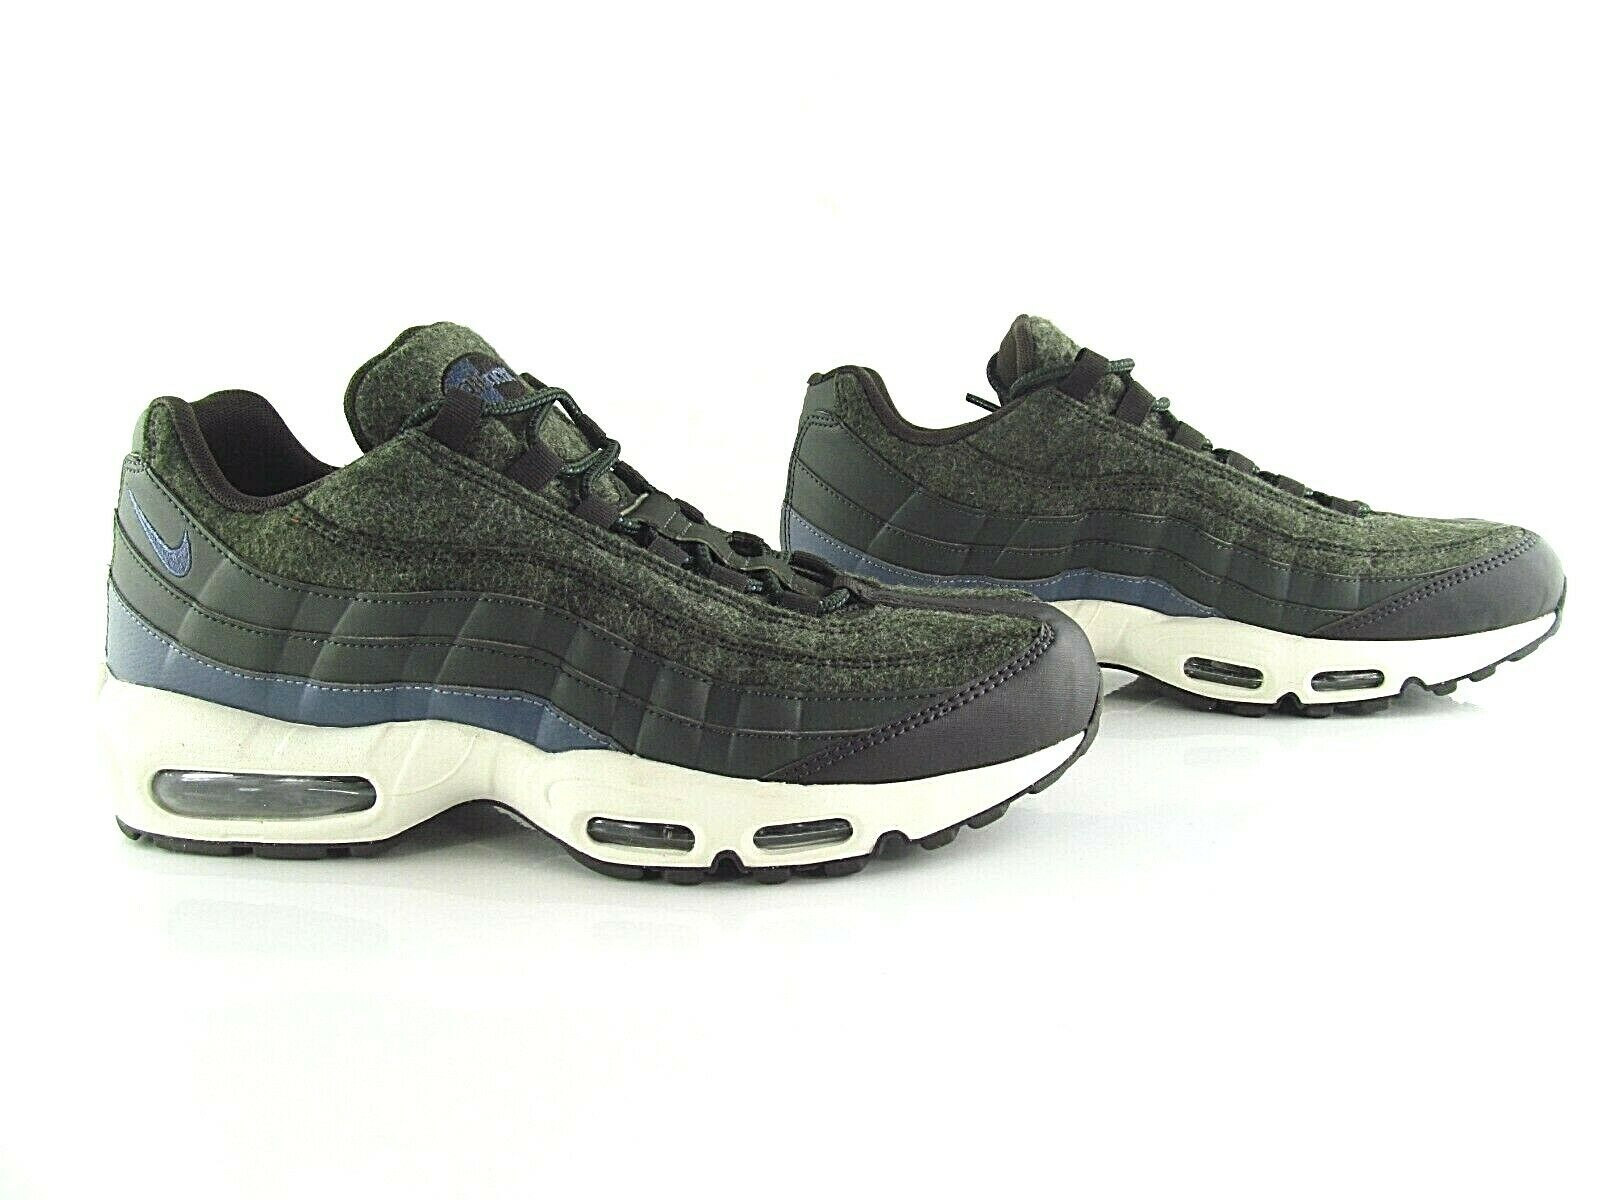 Nike Air Max 95 PRM Premium  Wool Pack Seqoia   Black 90 UK_9 US_10 Eur 44